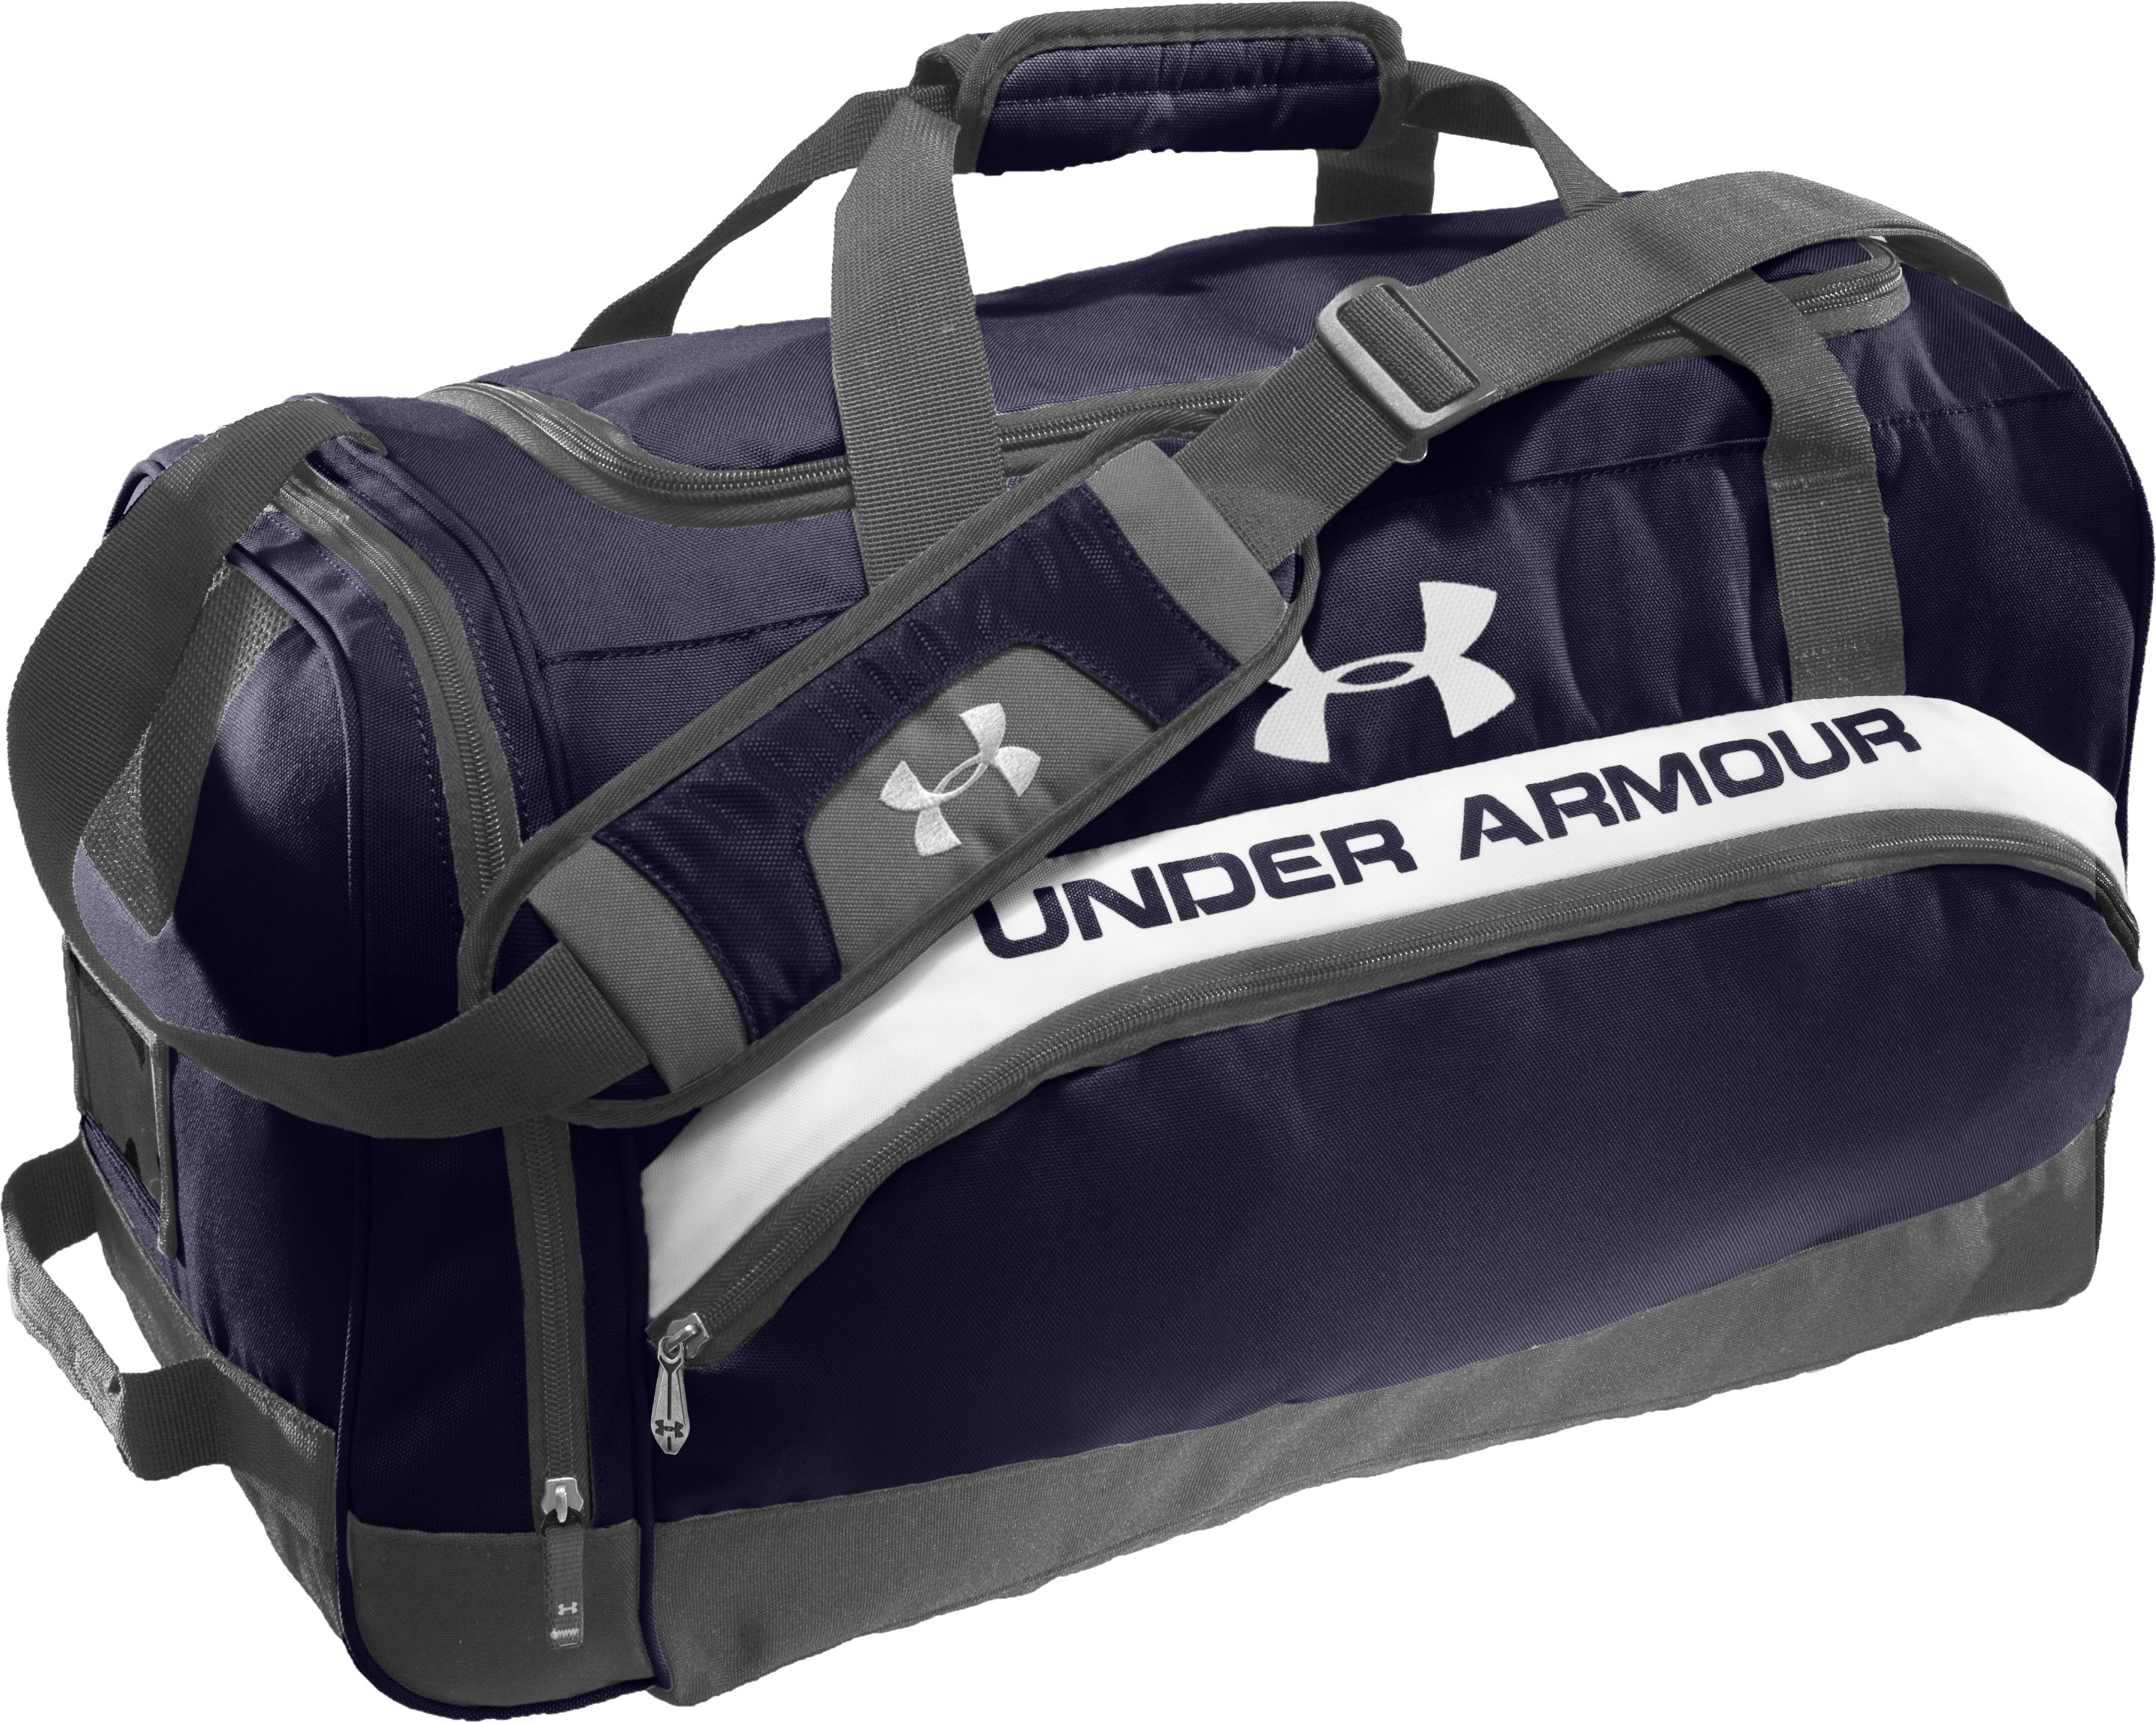 PTH® Victory Large Team Duffle Bag, Midnight Navy, zoomed image